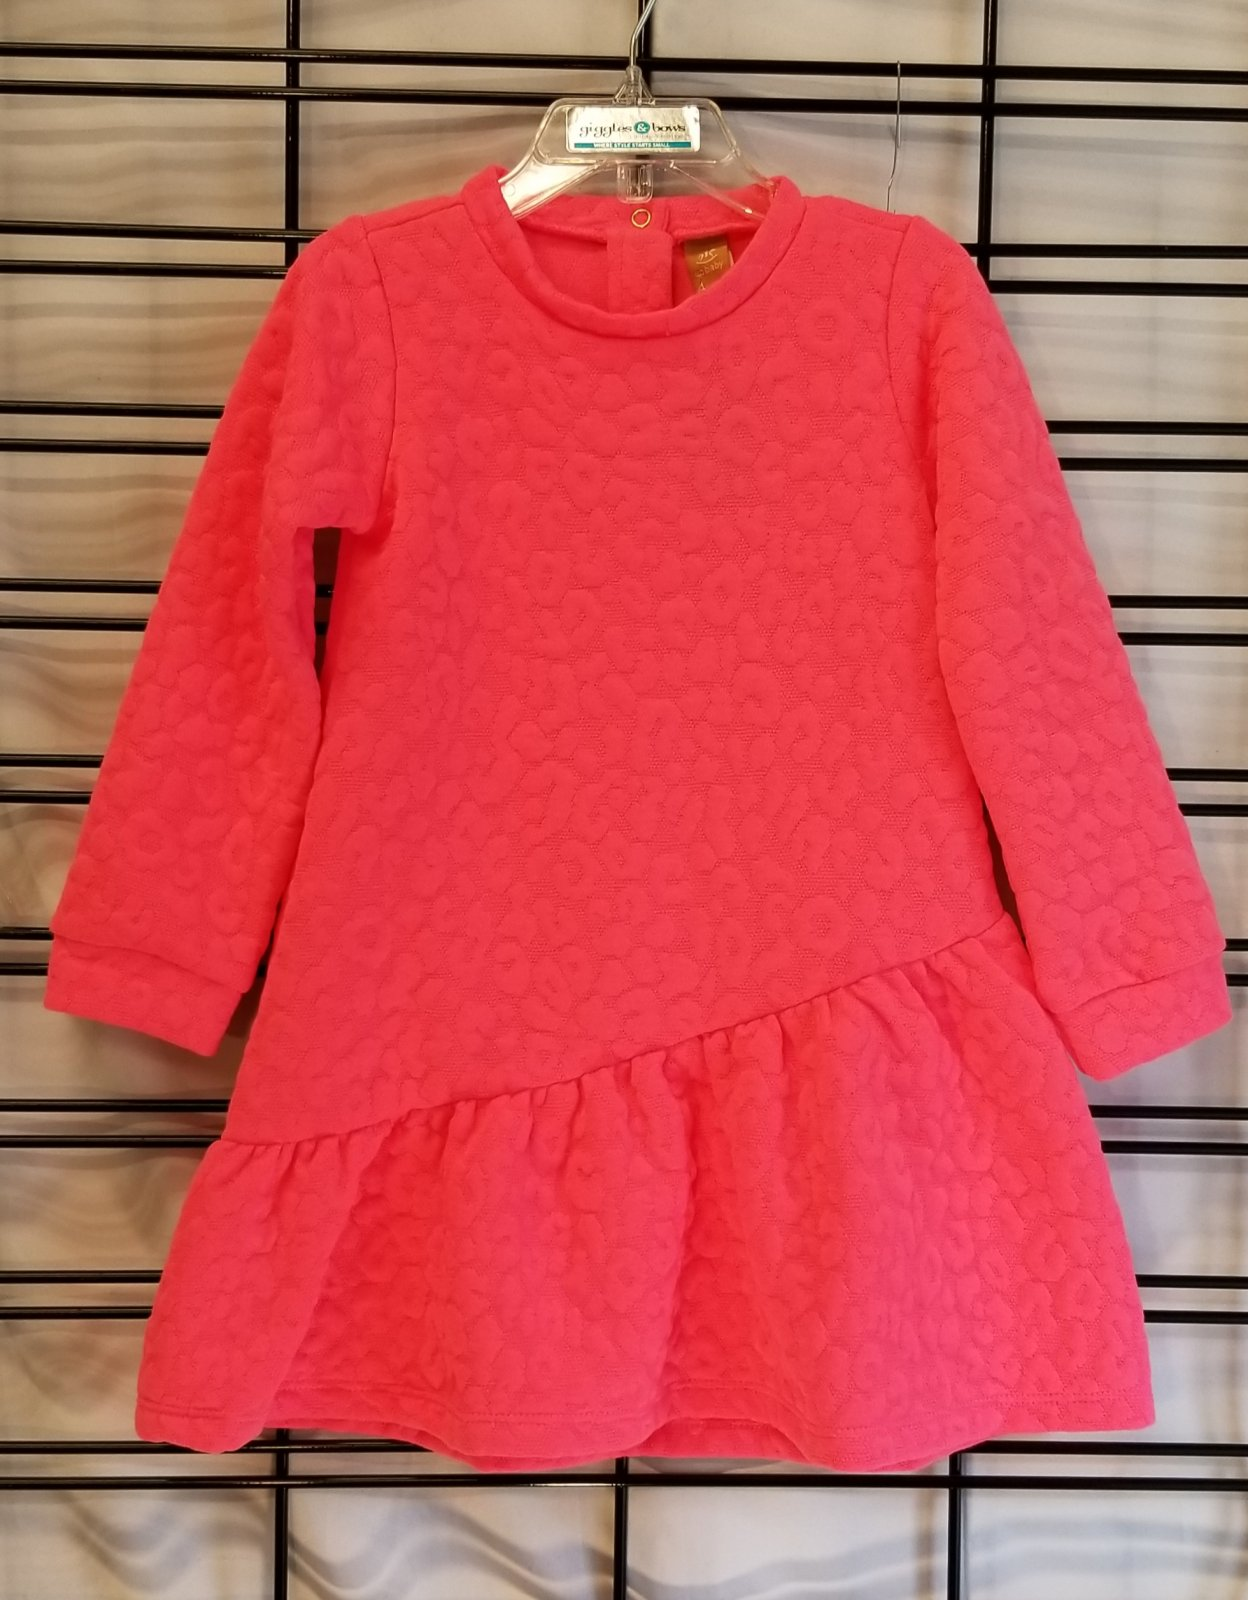 UP BABY  - Coral Dress